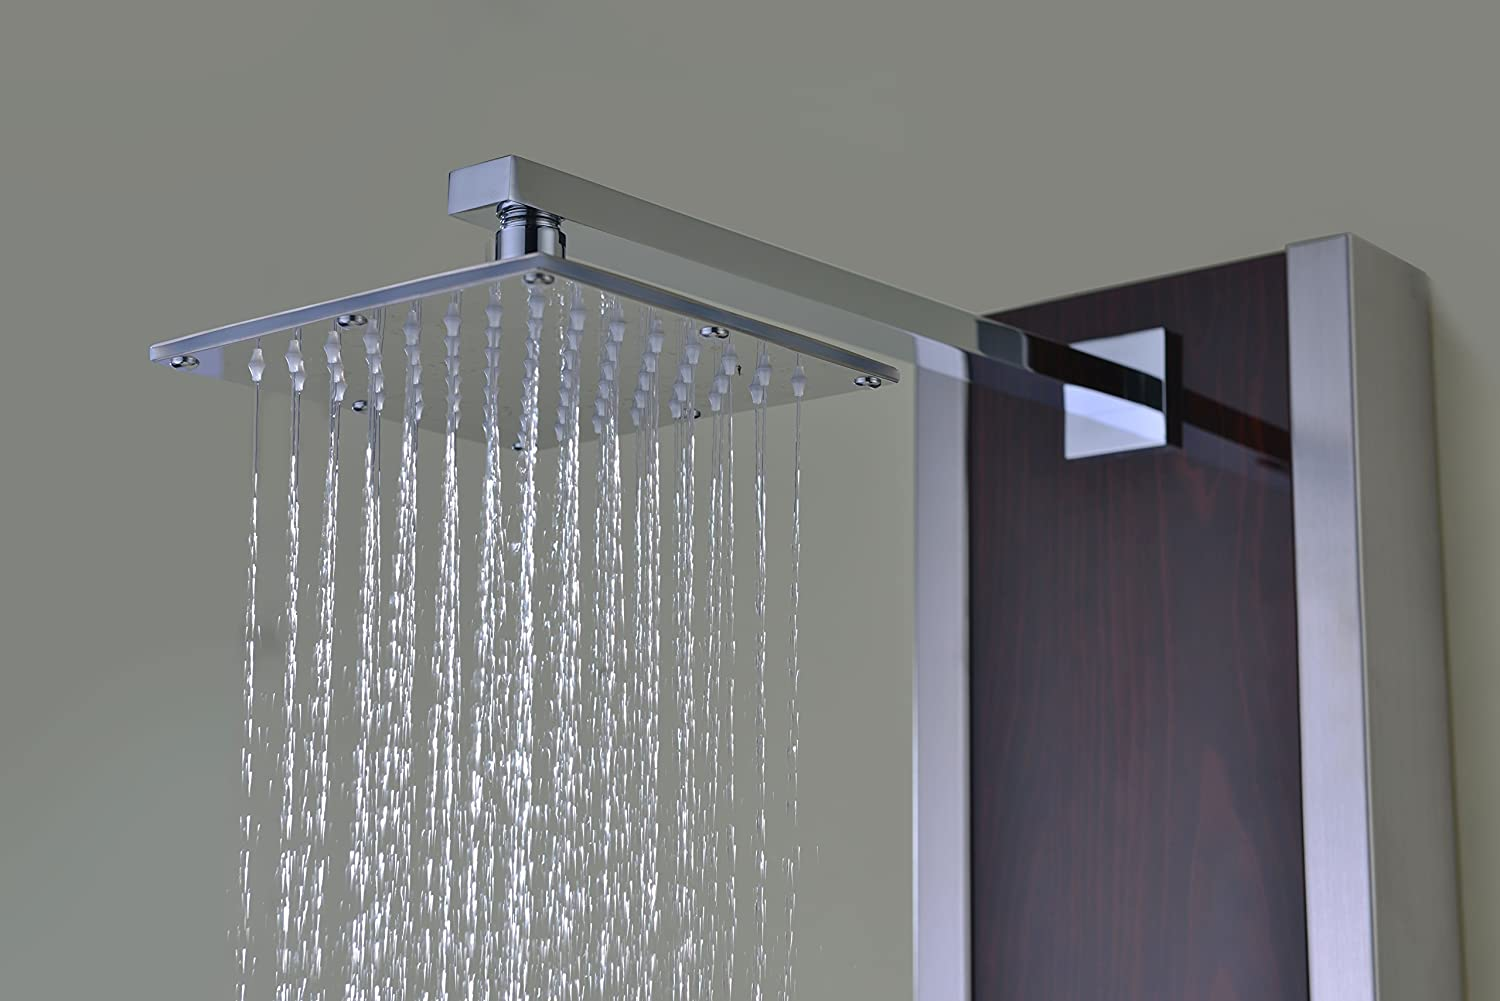 Monsoon 57 in. 4-Jetted Full Body Shower Panel with Heavy Rain ...